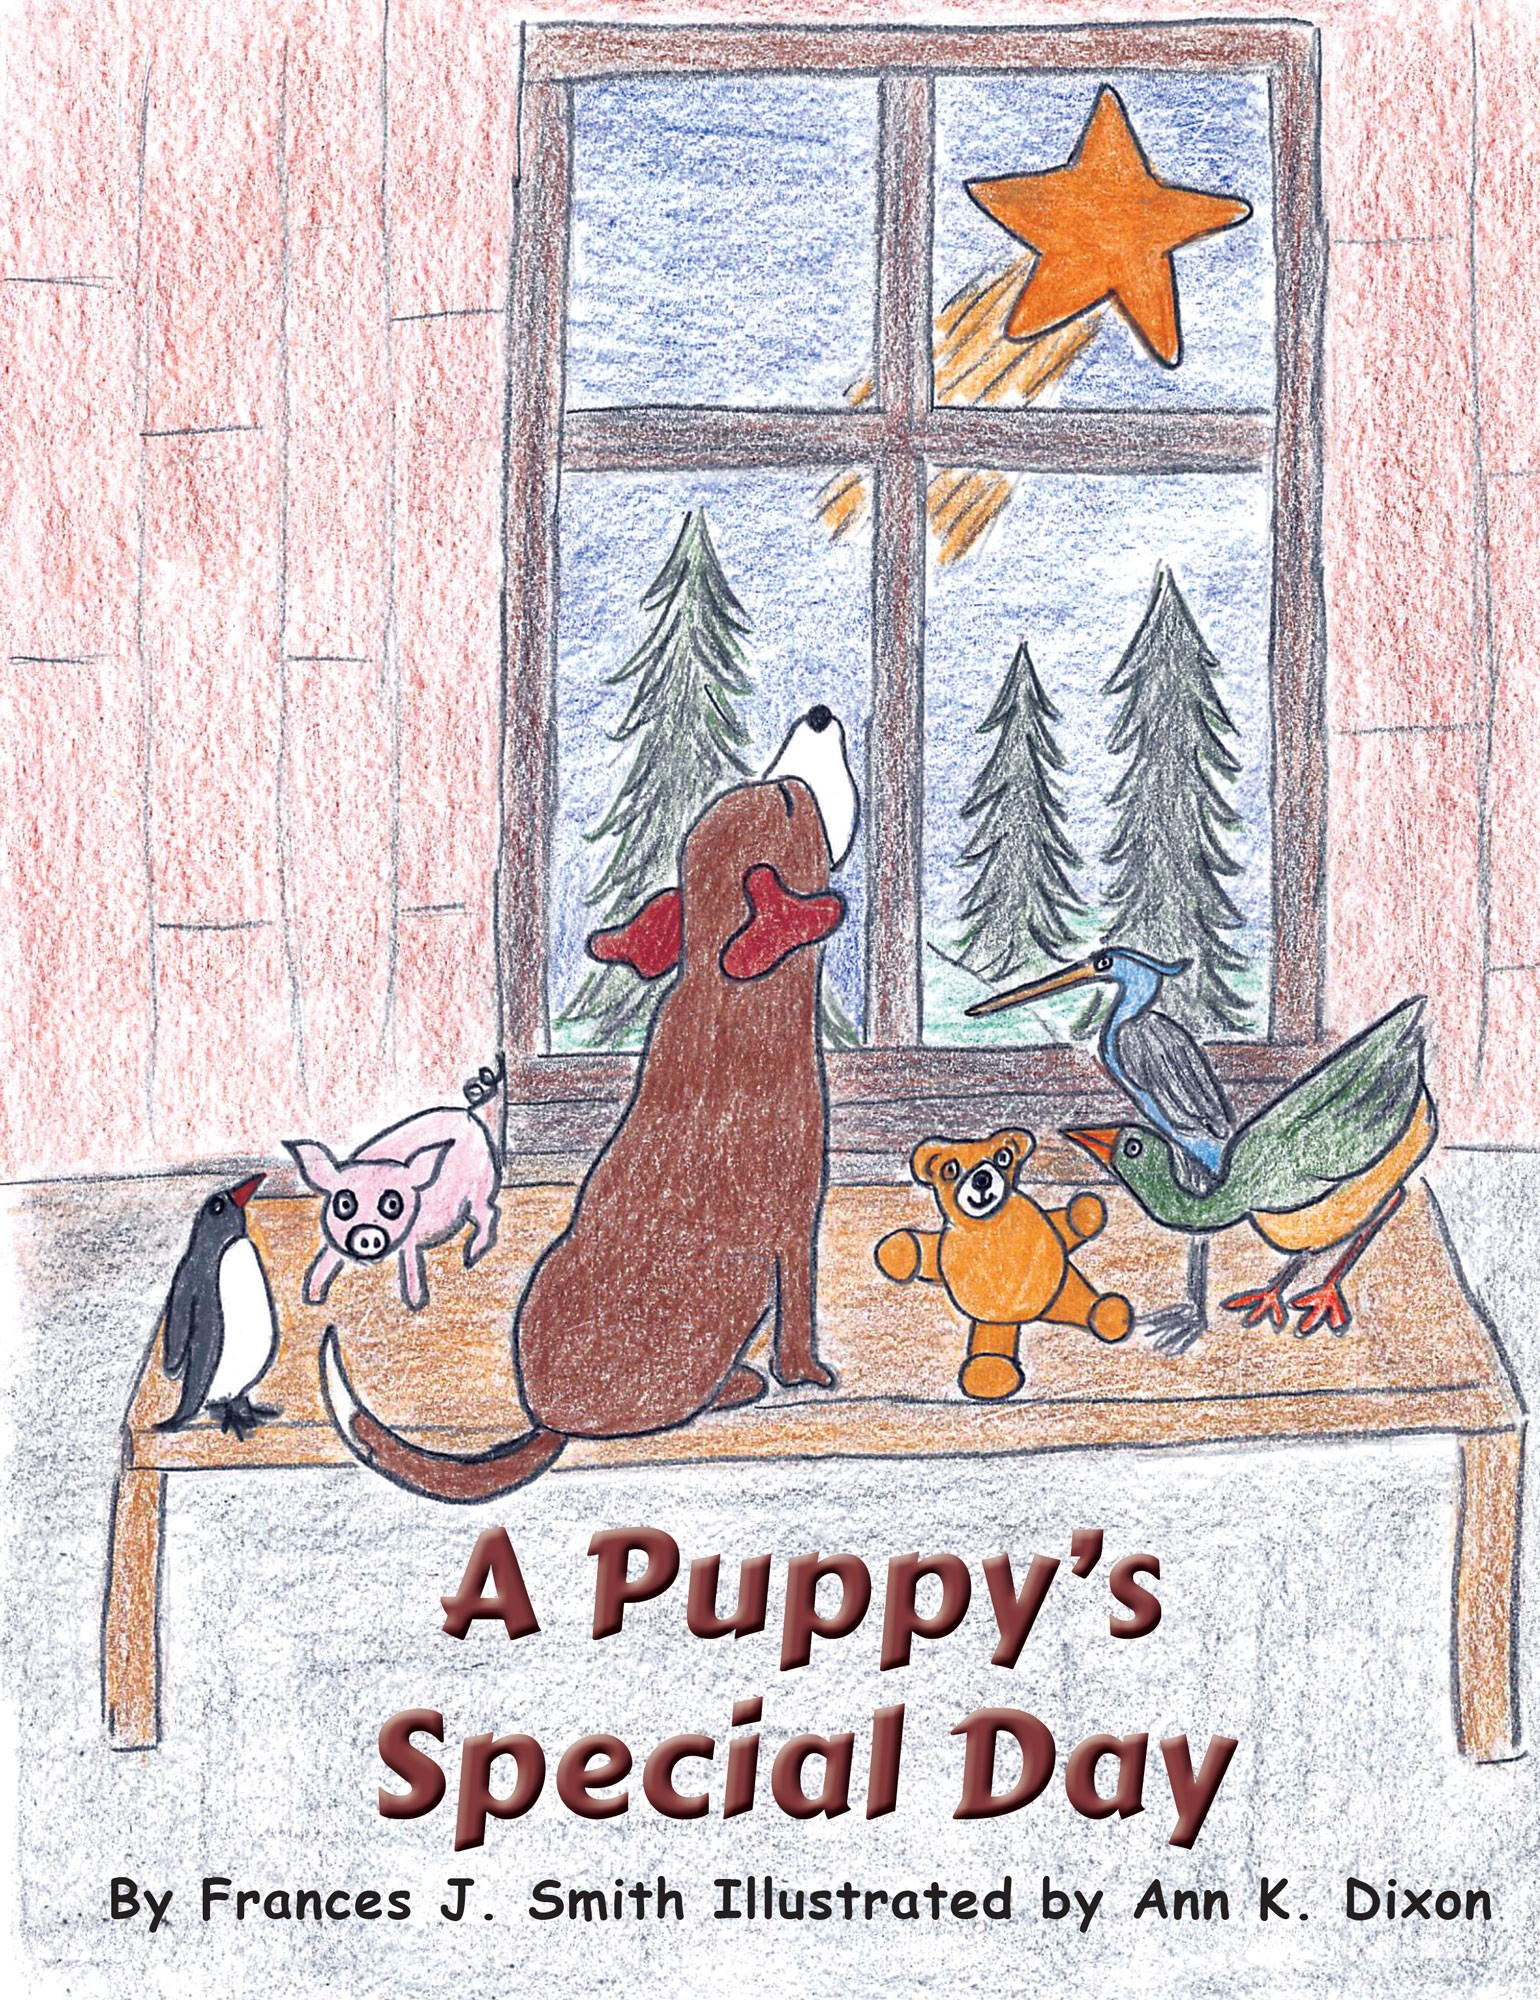 A Puppy's Special Day By Frances J. Smith in OutlooK-12 Magazine